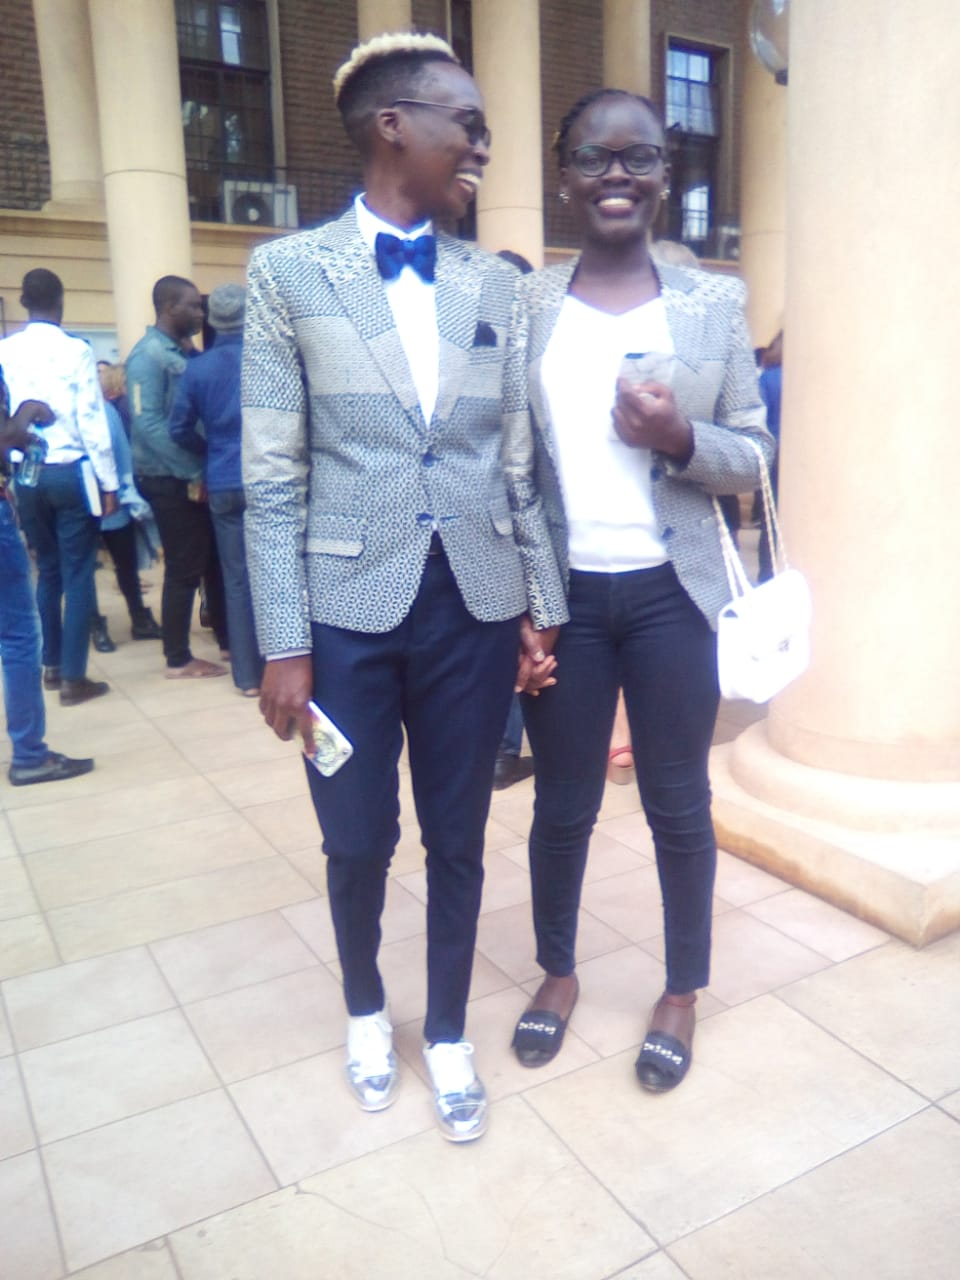 9534b907 b3b5 43e1 b44d 1a1458640af1 - Strike a pose: Lesbian couple steps out in matching outfits [PHOTOS]